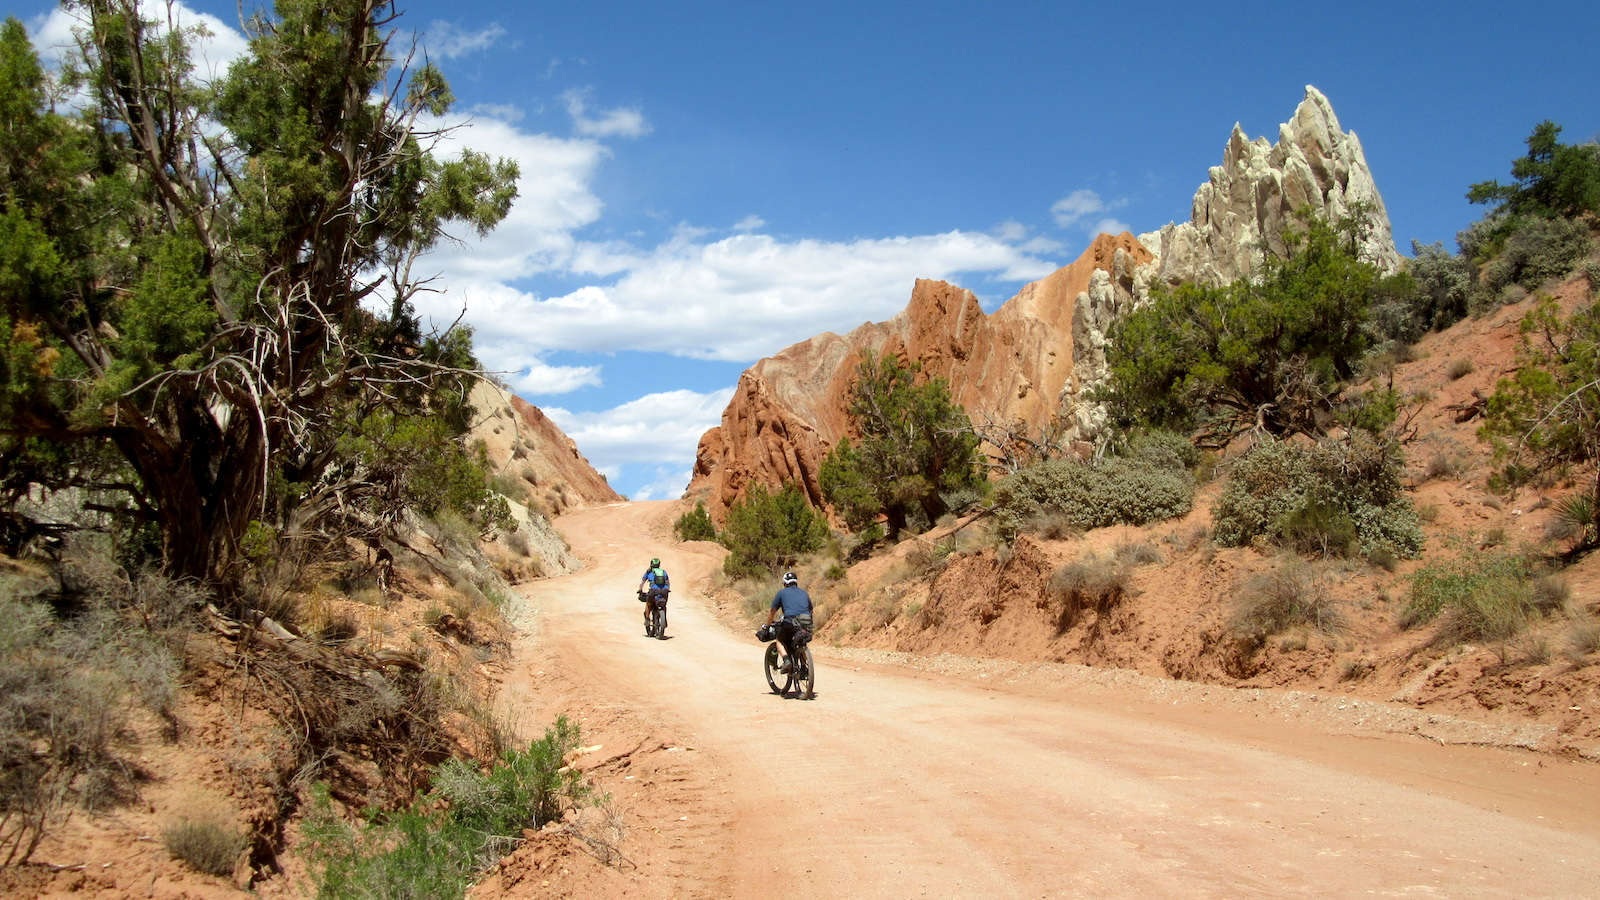 Bikepacking routes: 10 of the best USA bikepacking routes